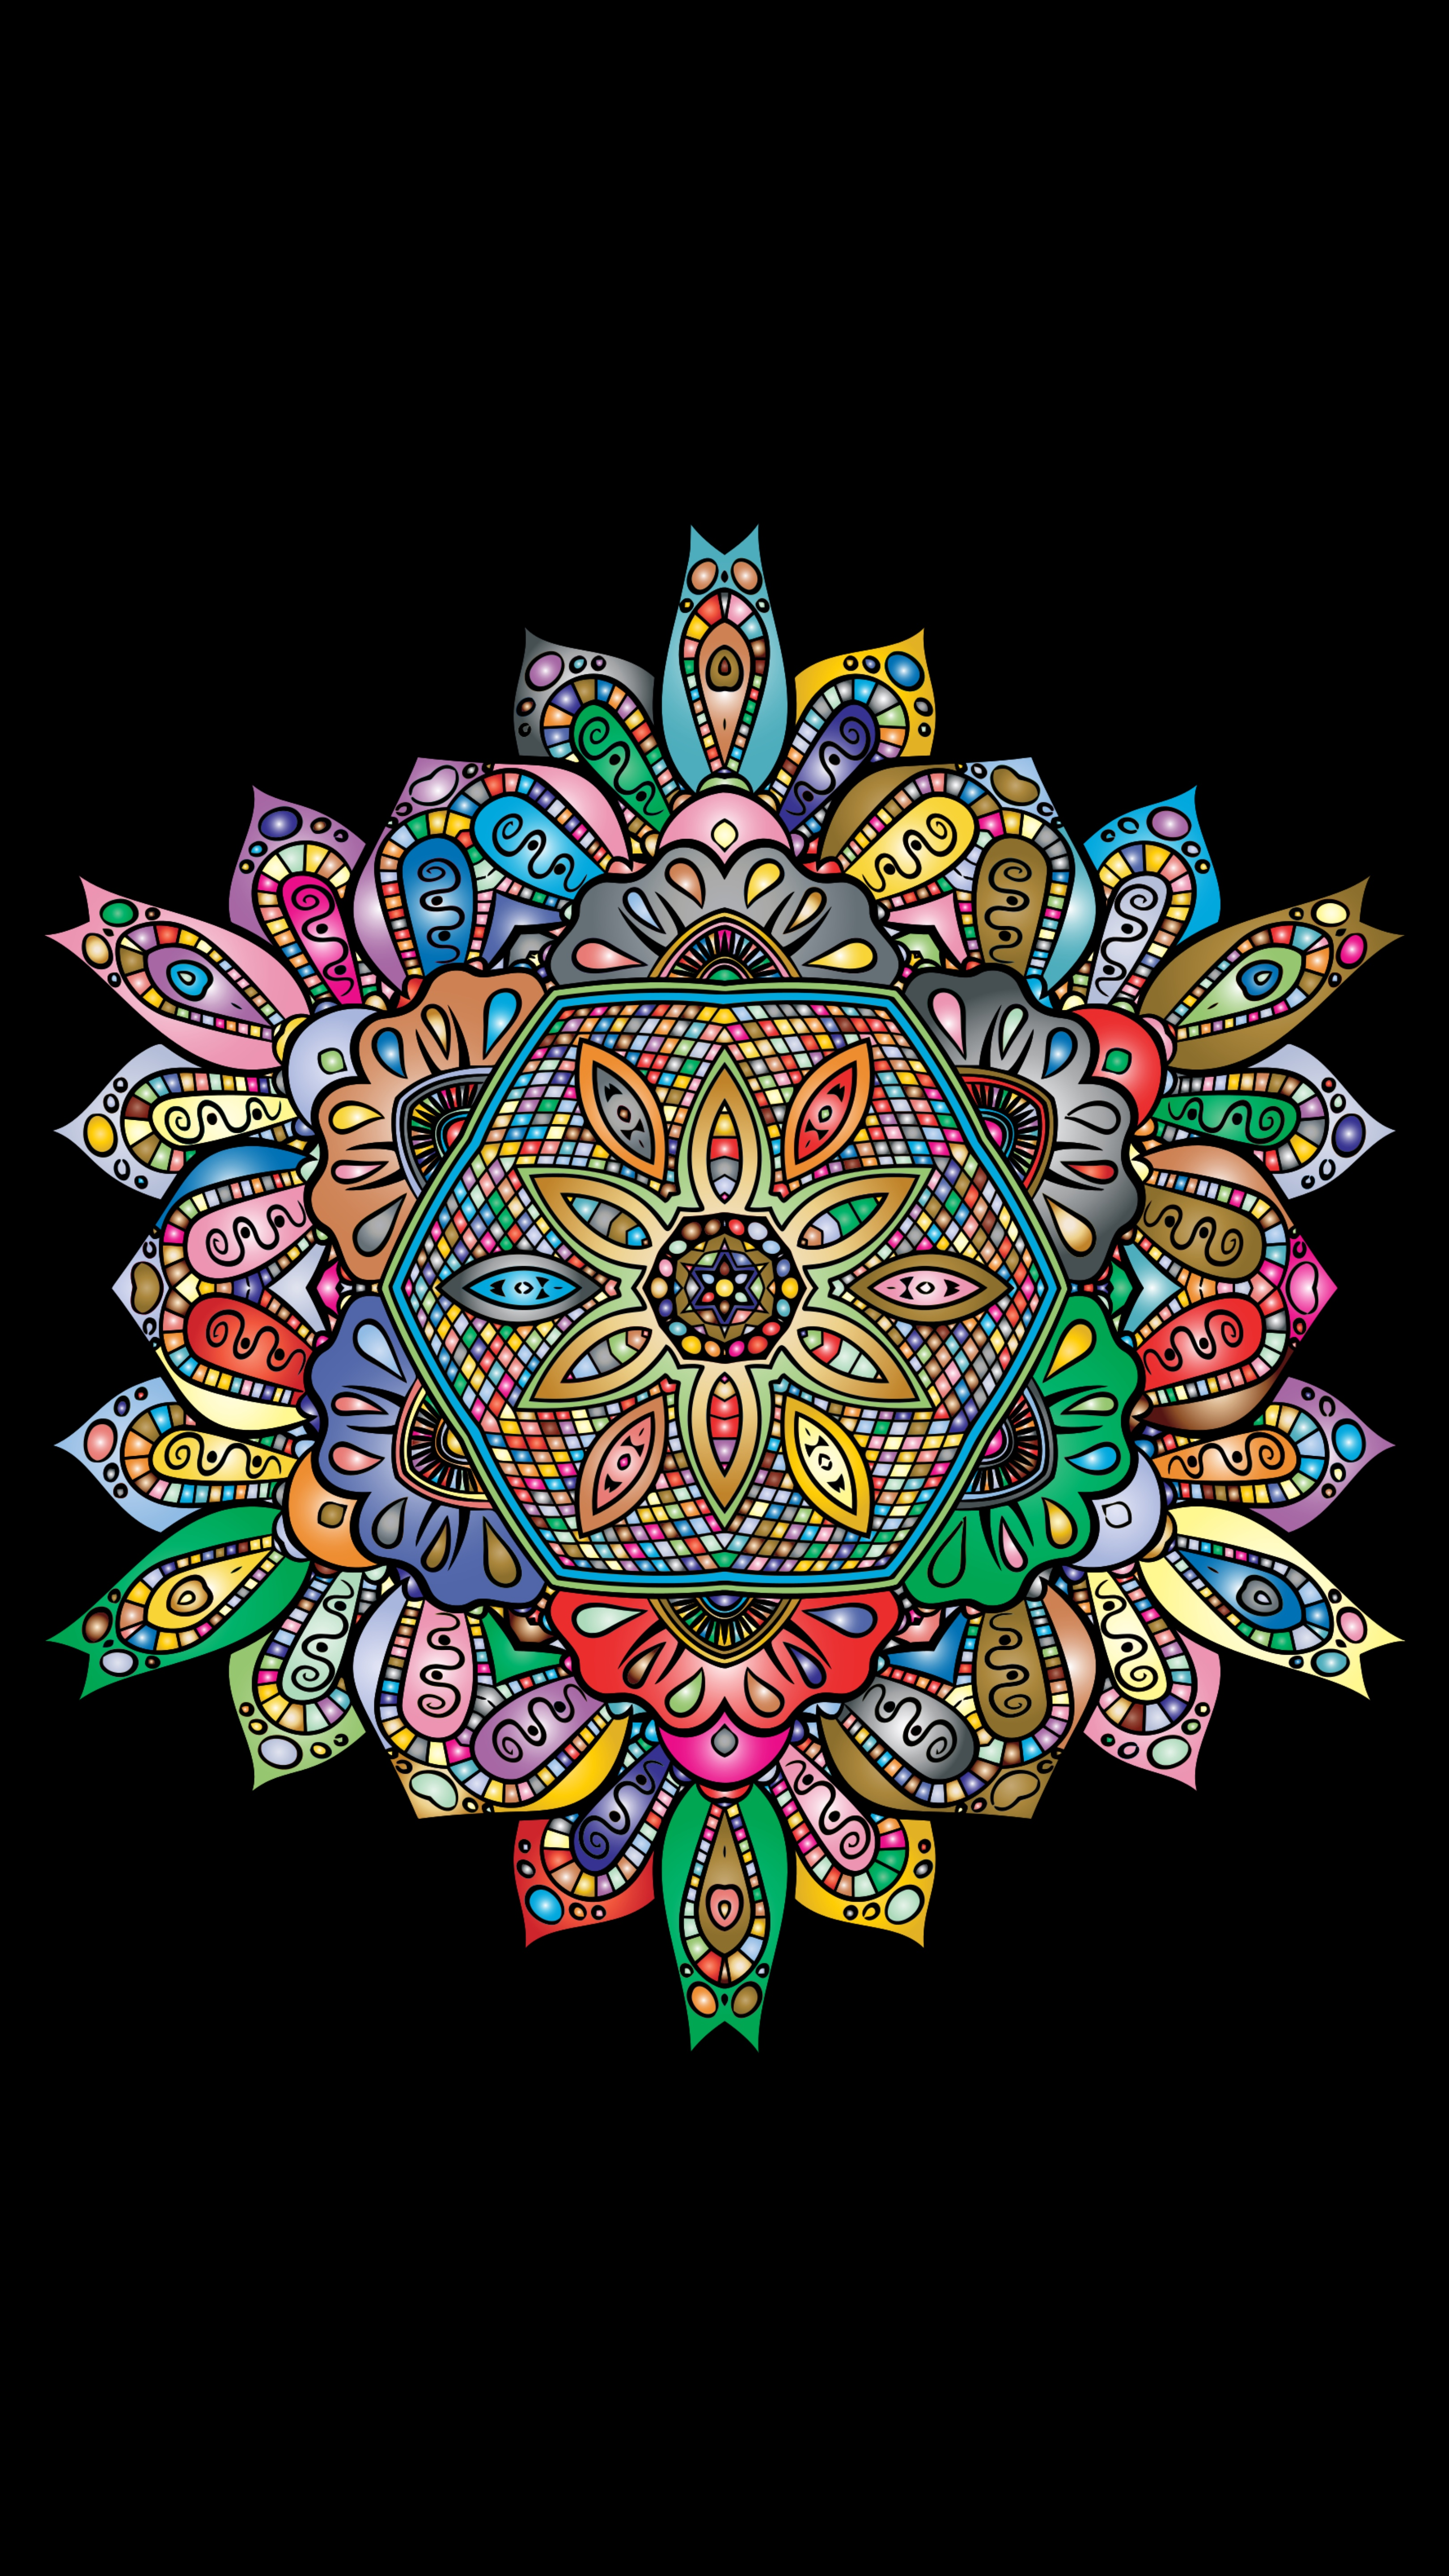 75720 download wallpaper Vector, Mandala, Multicolored, Motley, Floral, Patterns screensavers and pictures for free